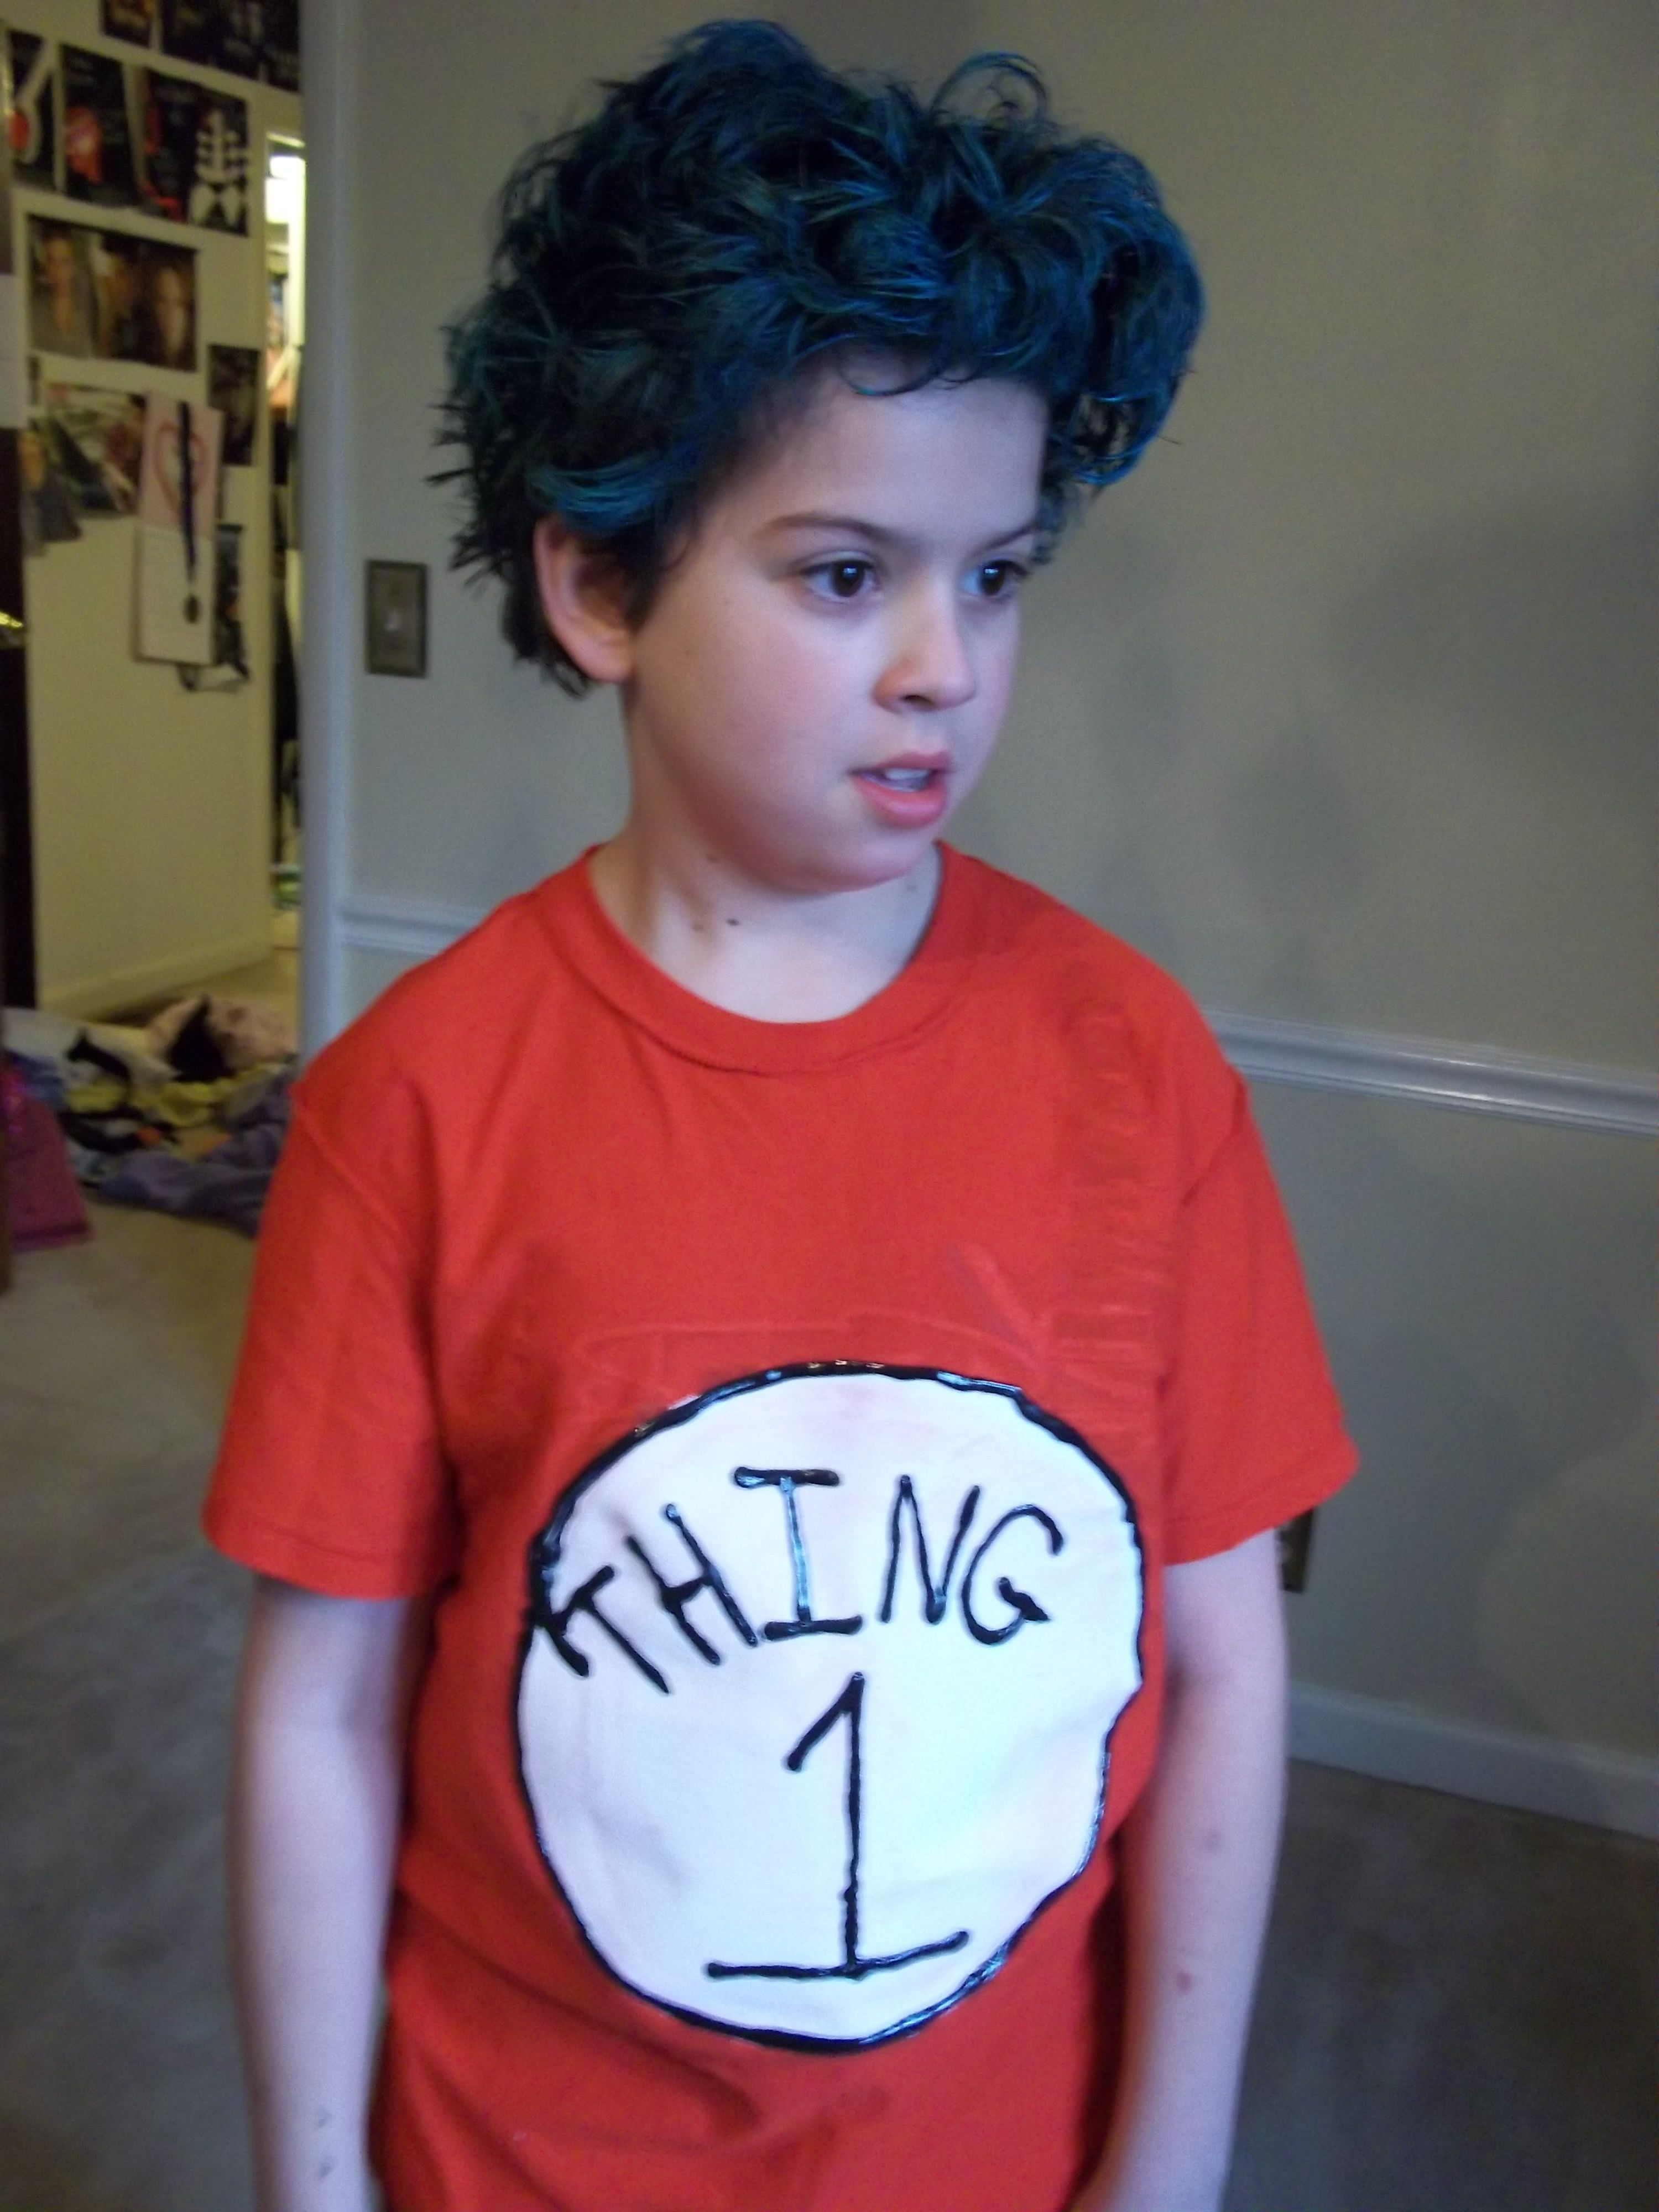 A Simple Costume For Dr Seuss Day Just Painted A Red Shirt With Thing 1 Blue Hair Spray And